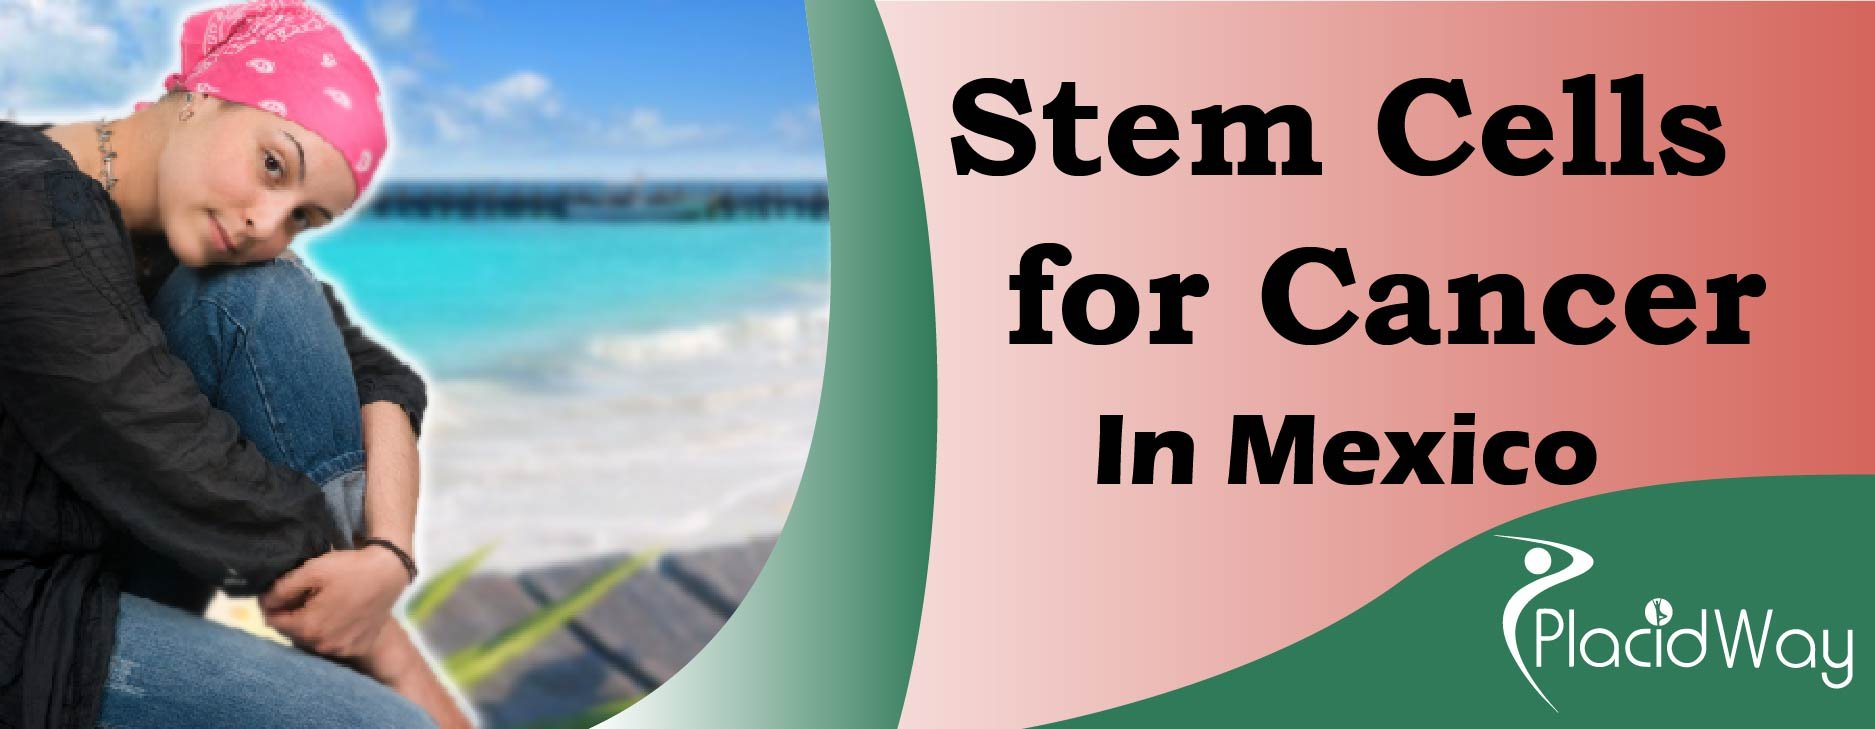 Cancer Stem Cell Treatment in Mexico, Stem Cell Cancer Therapies